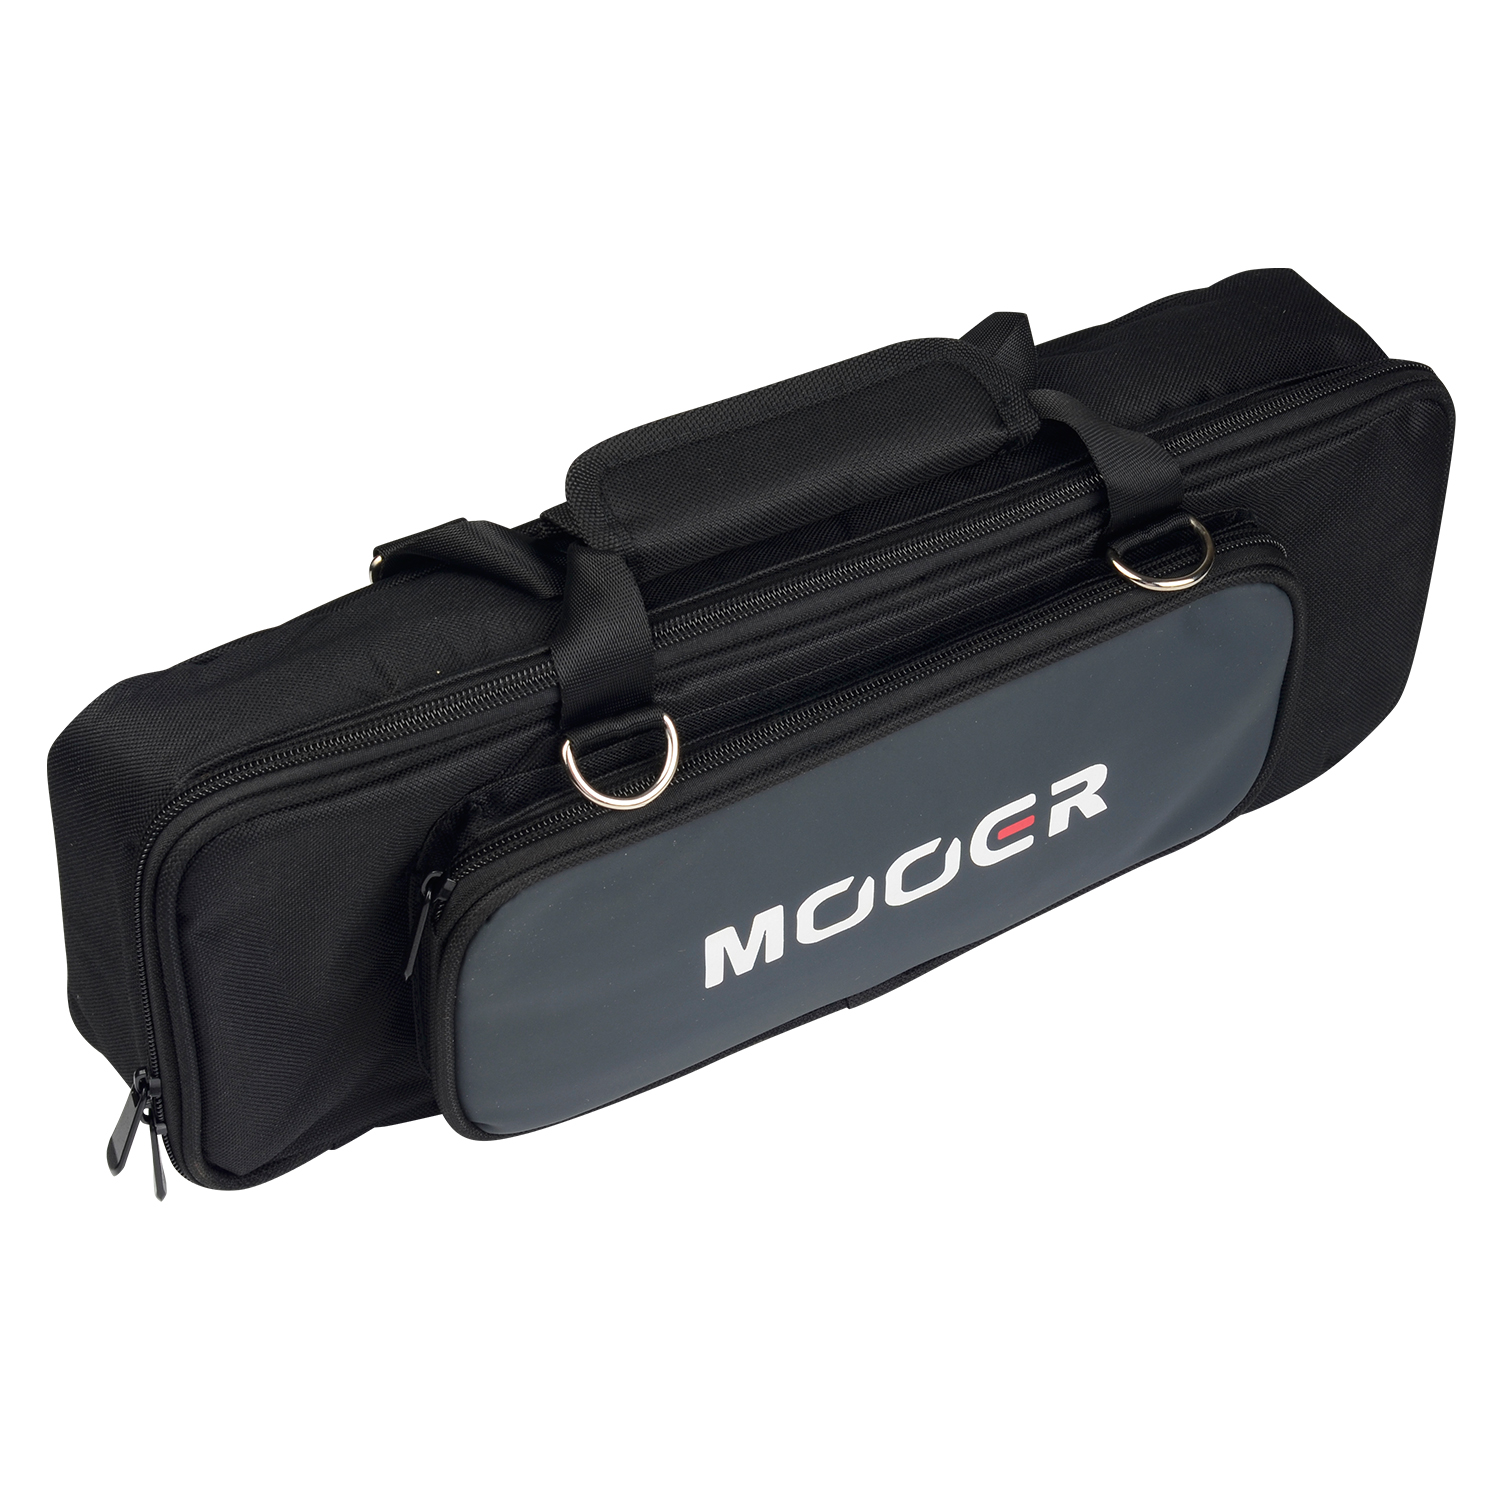 Mooer Stomplate Mini Effect Pedal Board Bag Durable Non-slip Bottom Compact Size PB-05 on stage gpb2000 compact pedal board